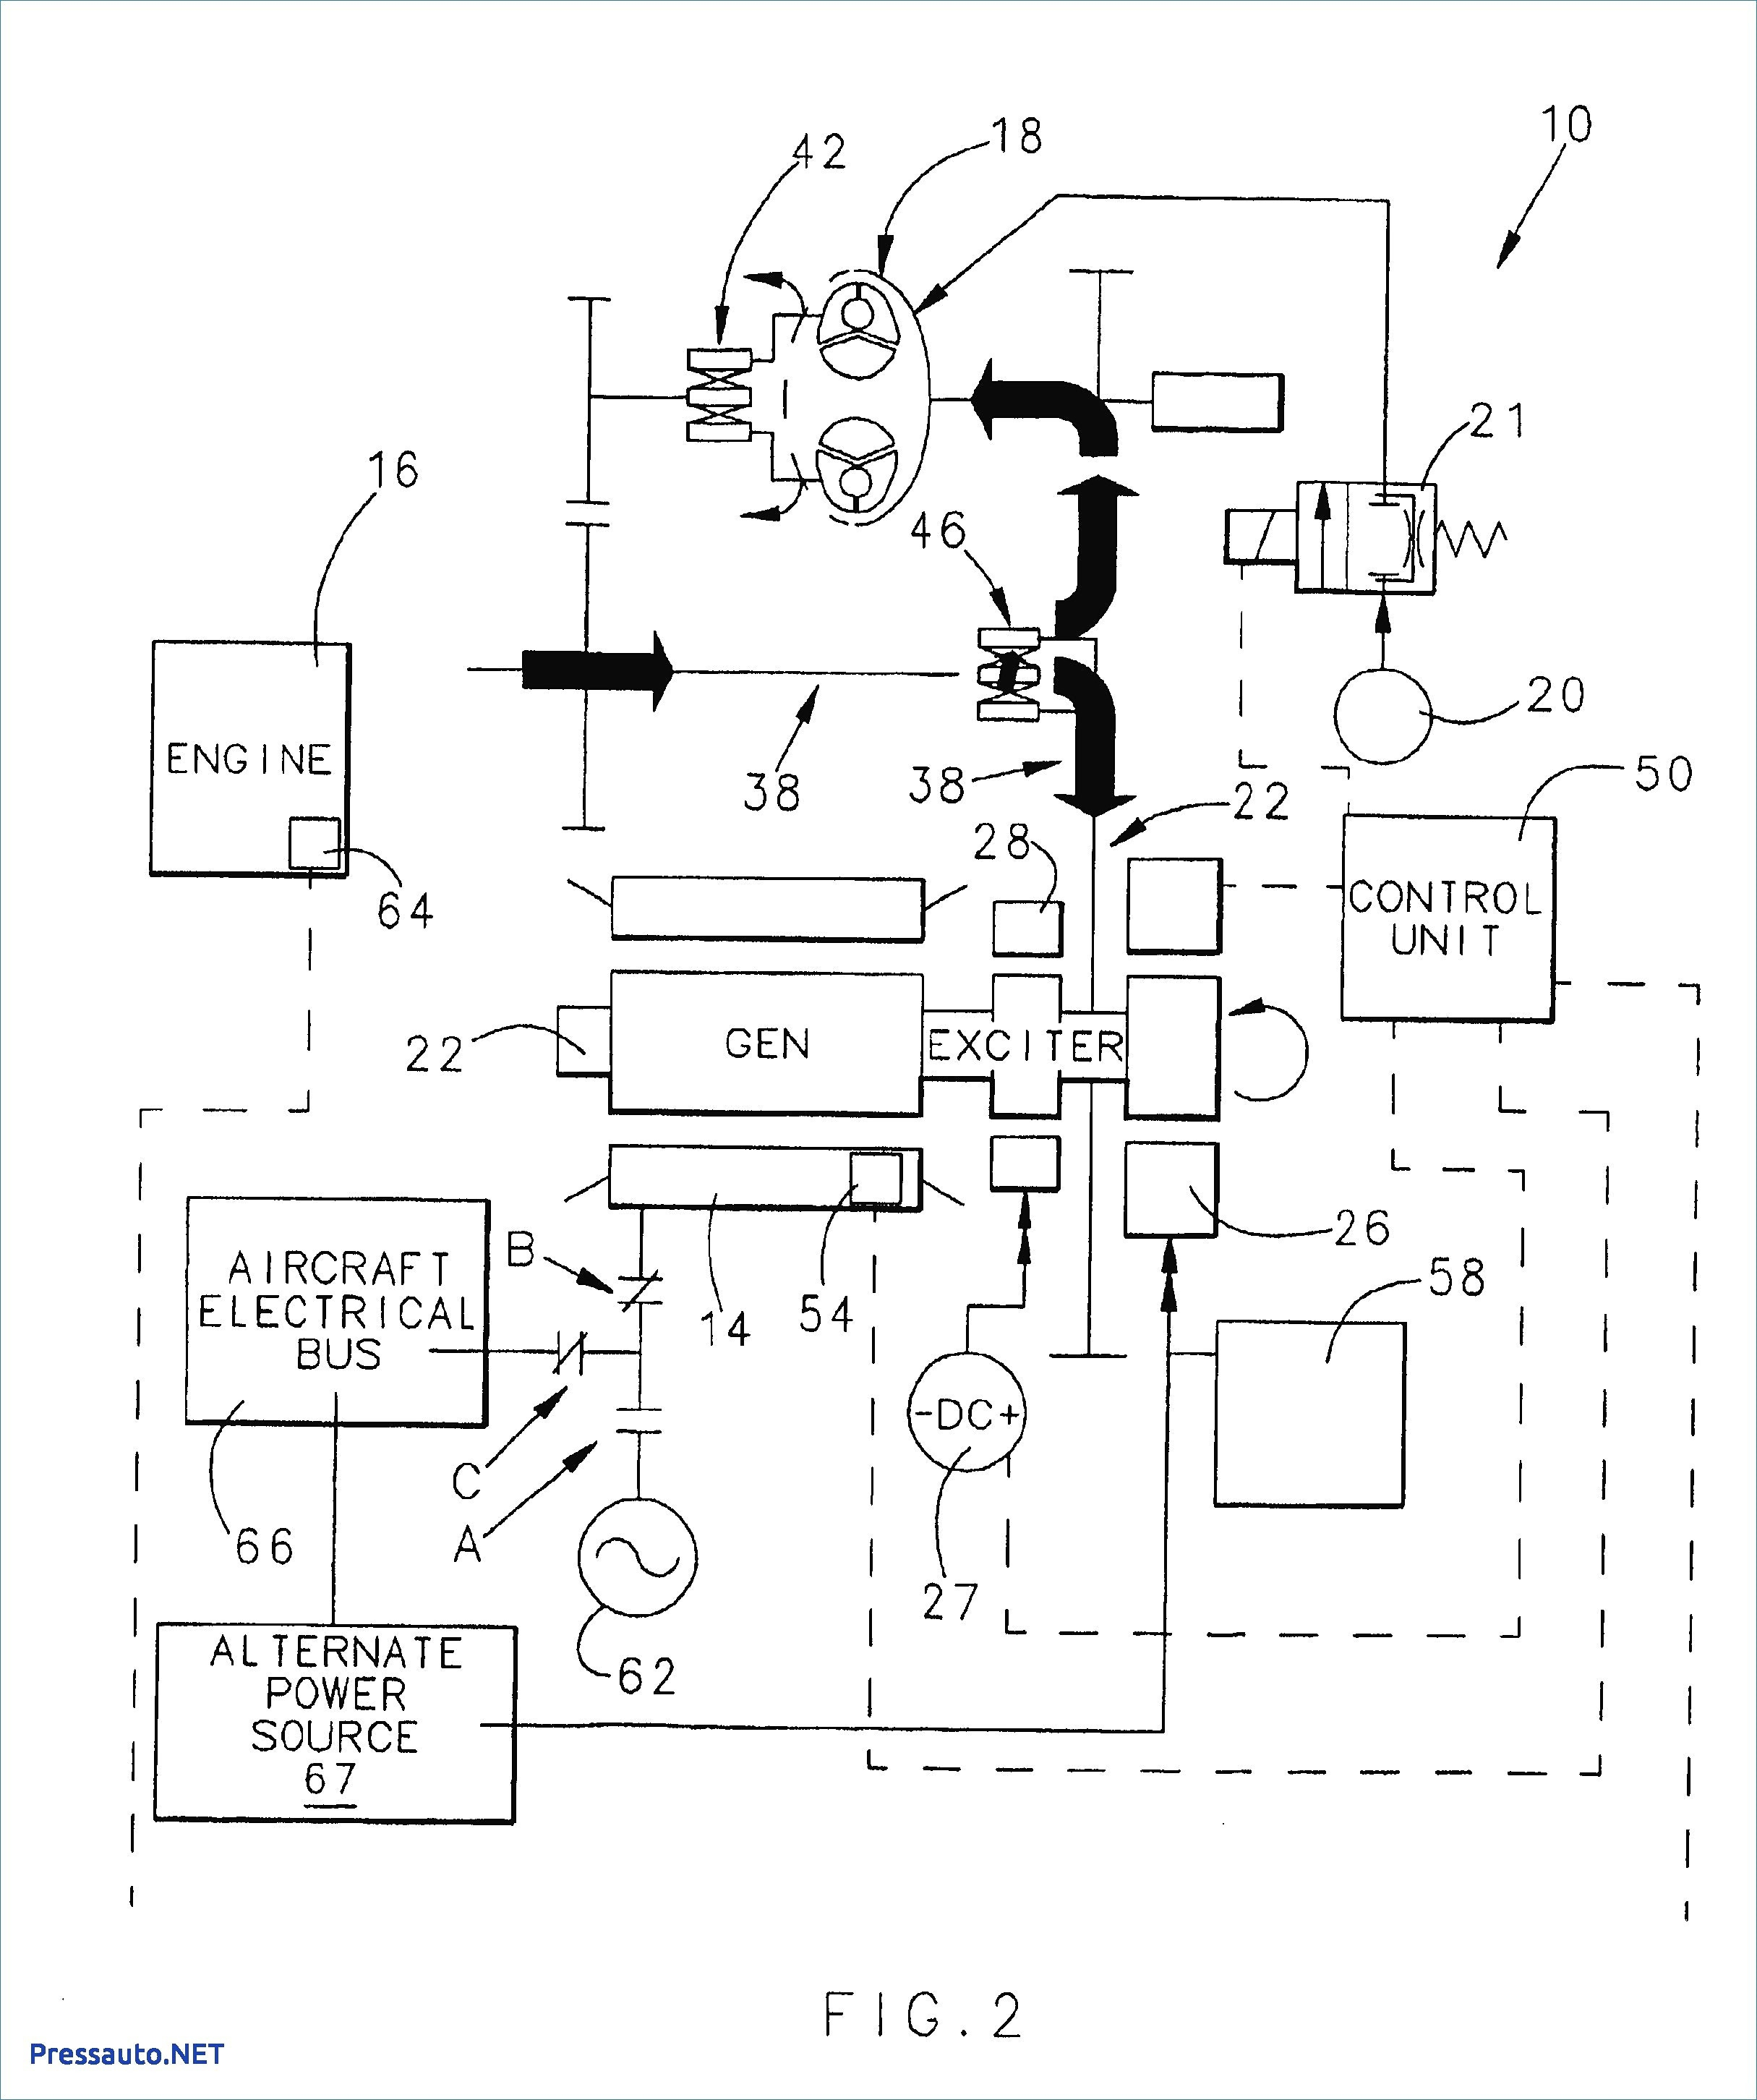 Ac Delco 4 Wire Alternator Wiring Diagram